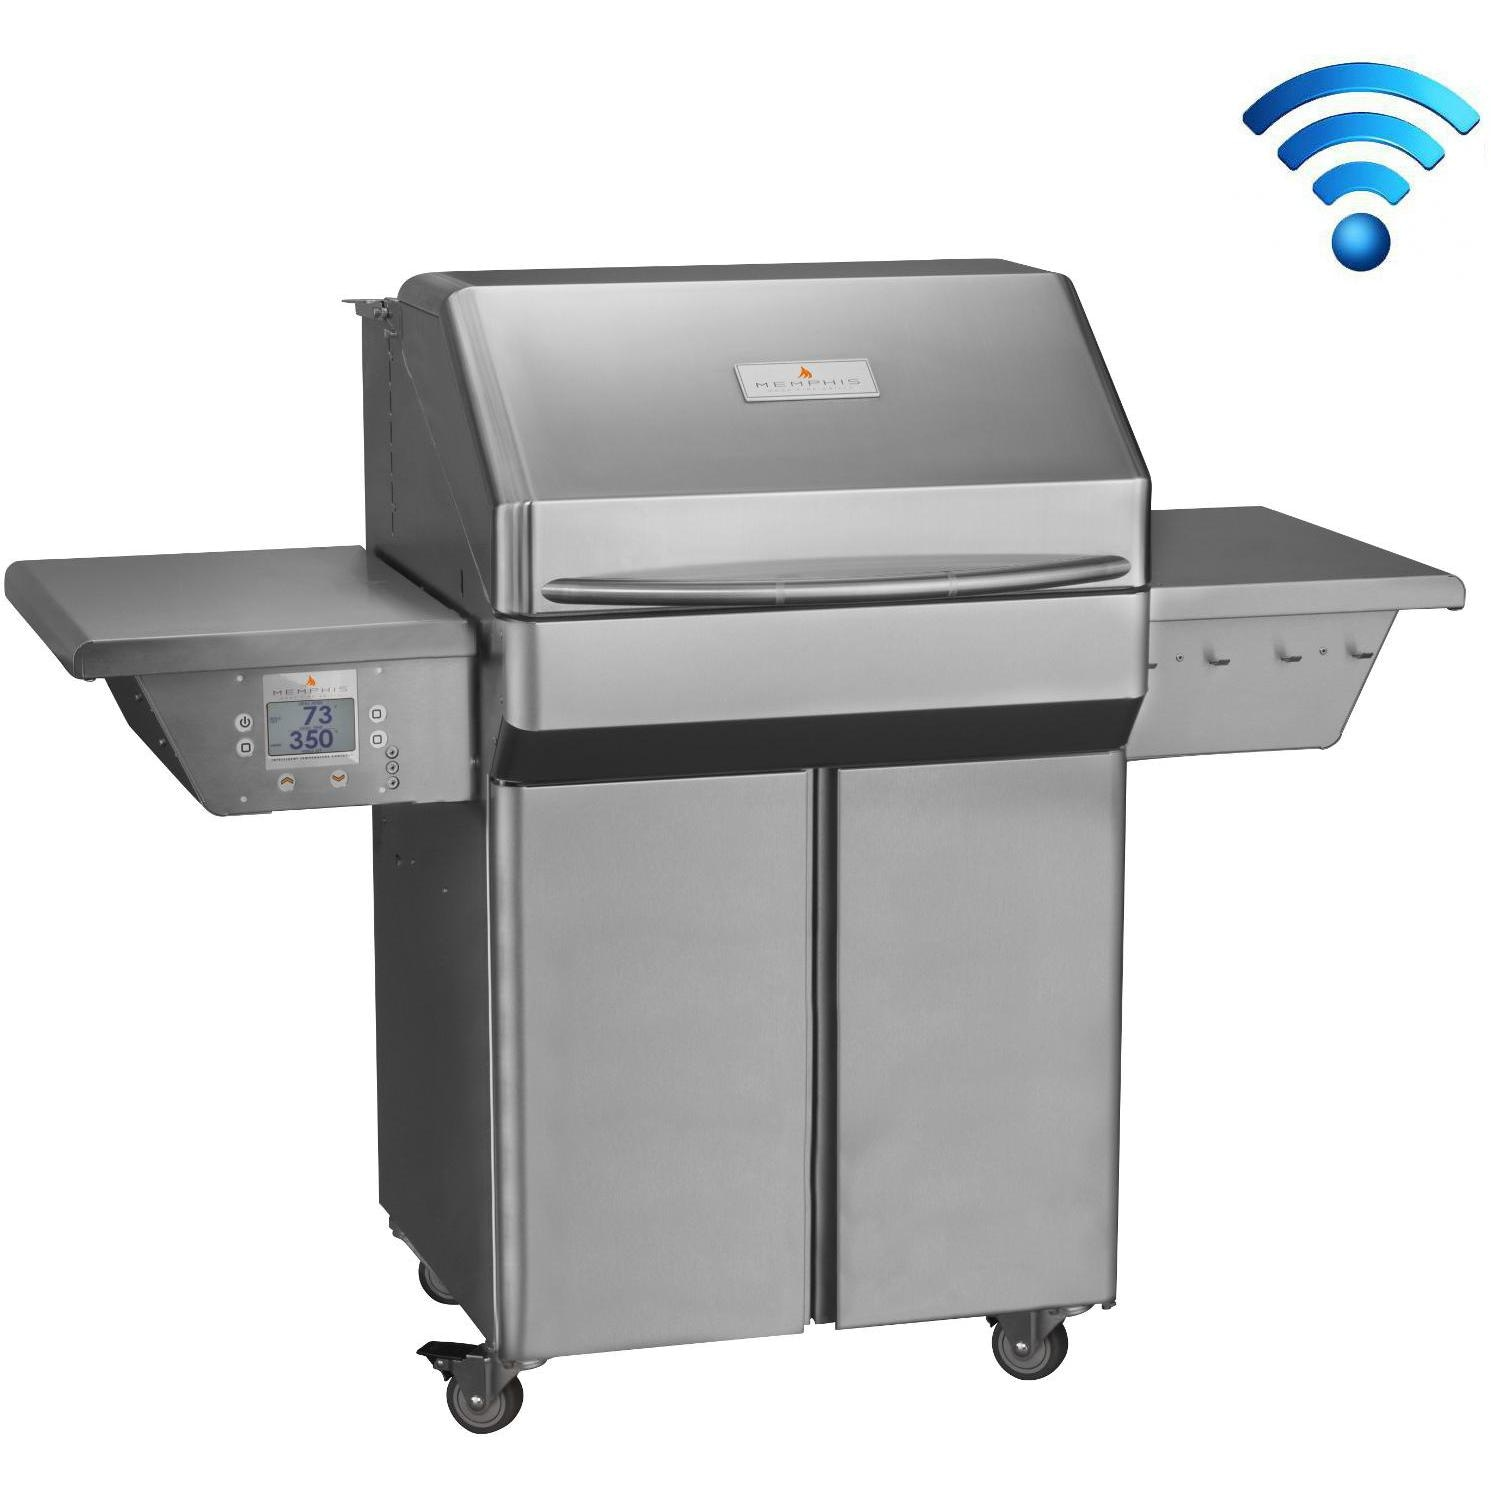 Memphis Grills Pro Wi-Fi Controlled 28-Inch 304 Stainless Steel Pellet Grill